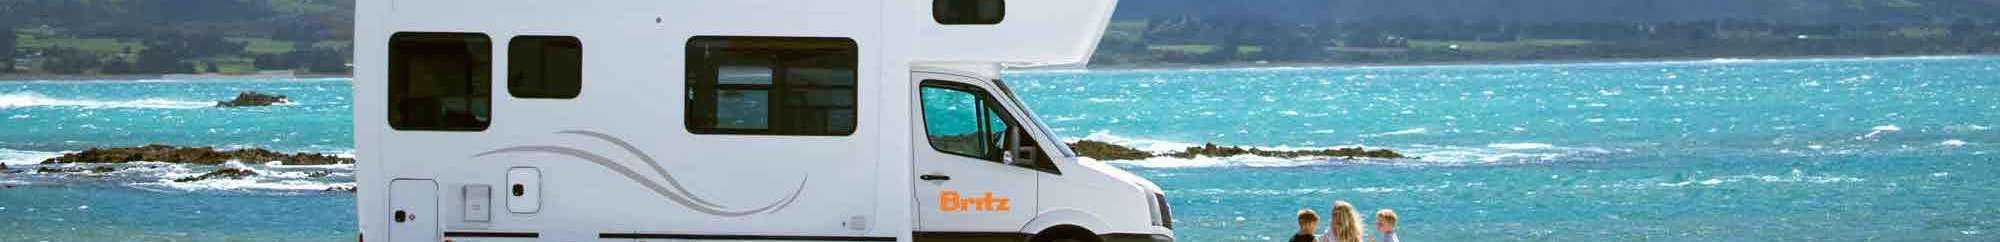 britz campervan new zealand